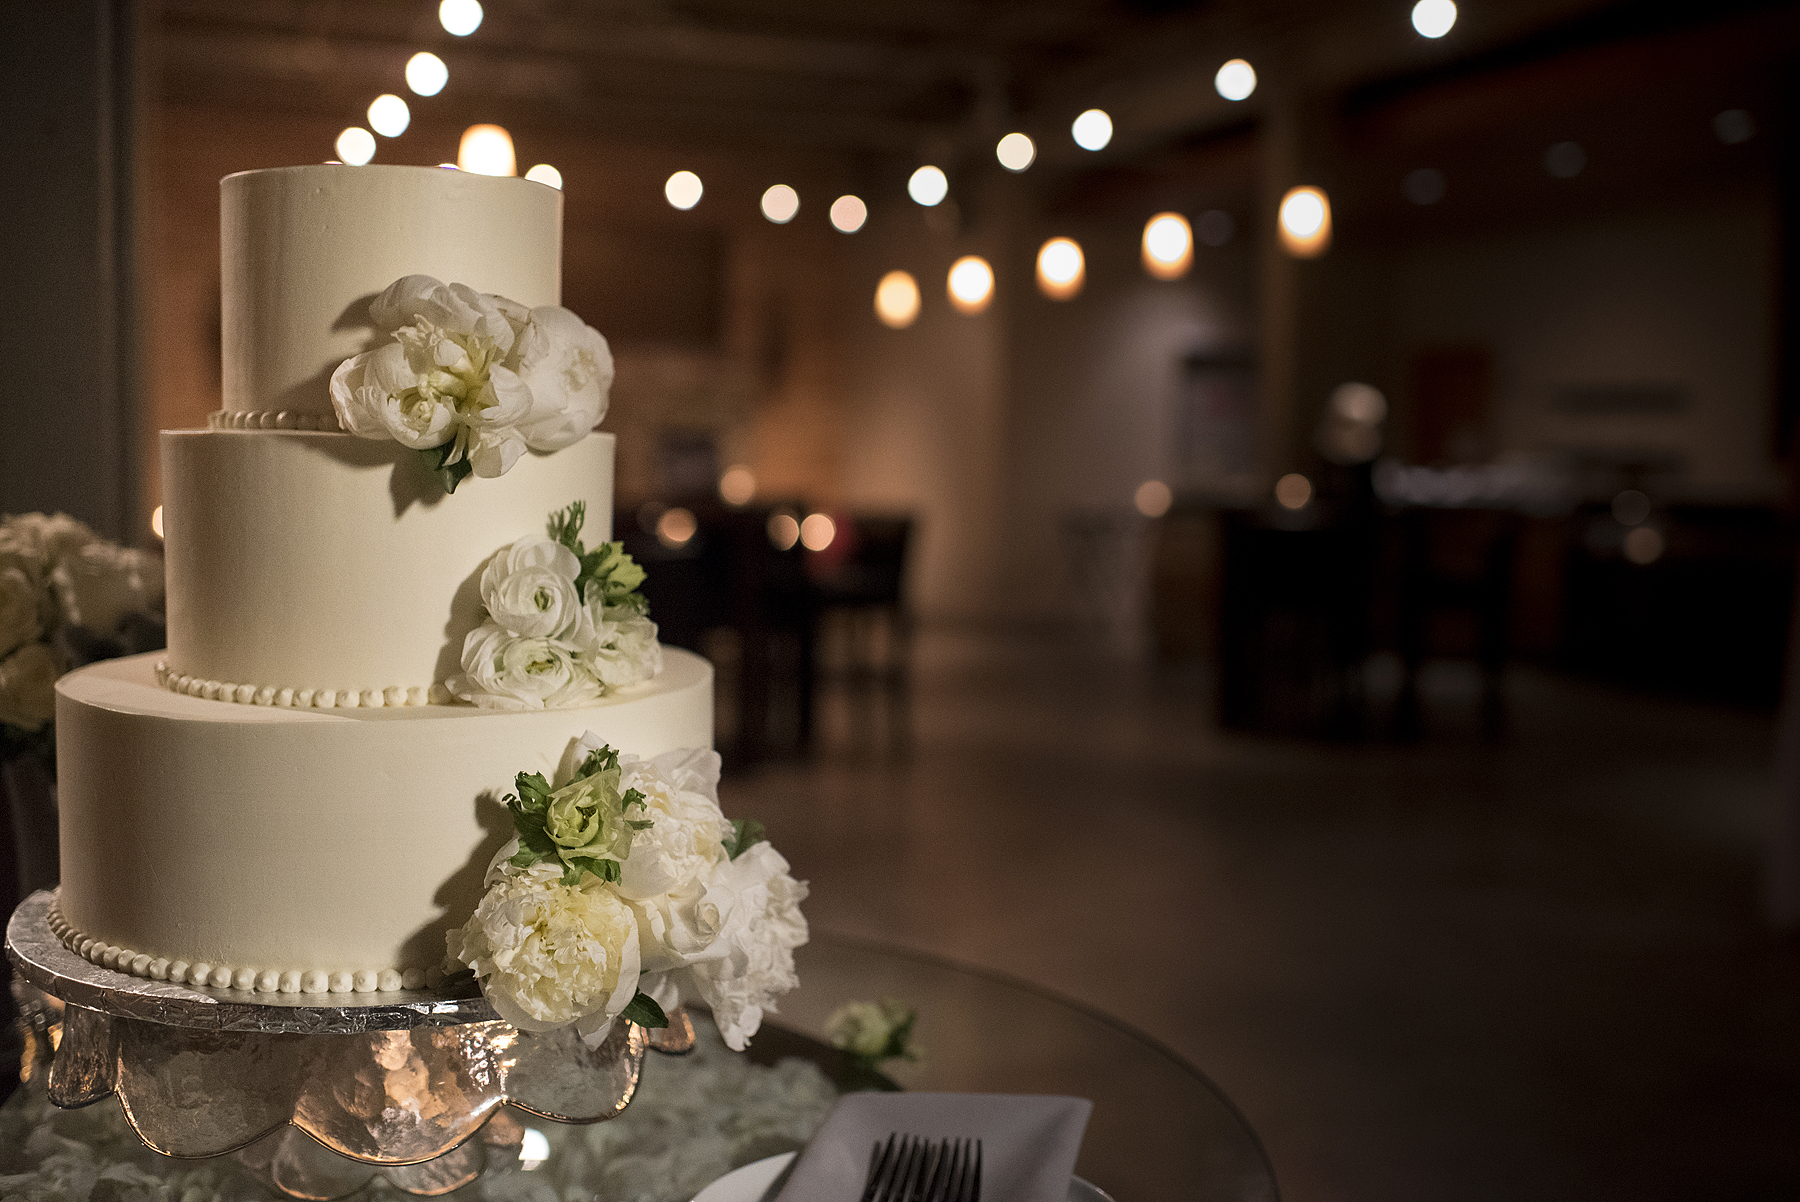 Silvery Winter Wedding in the City - Valley & Company Events